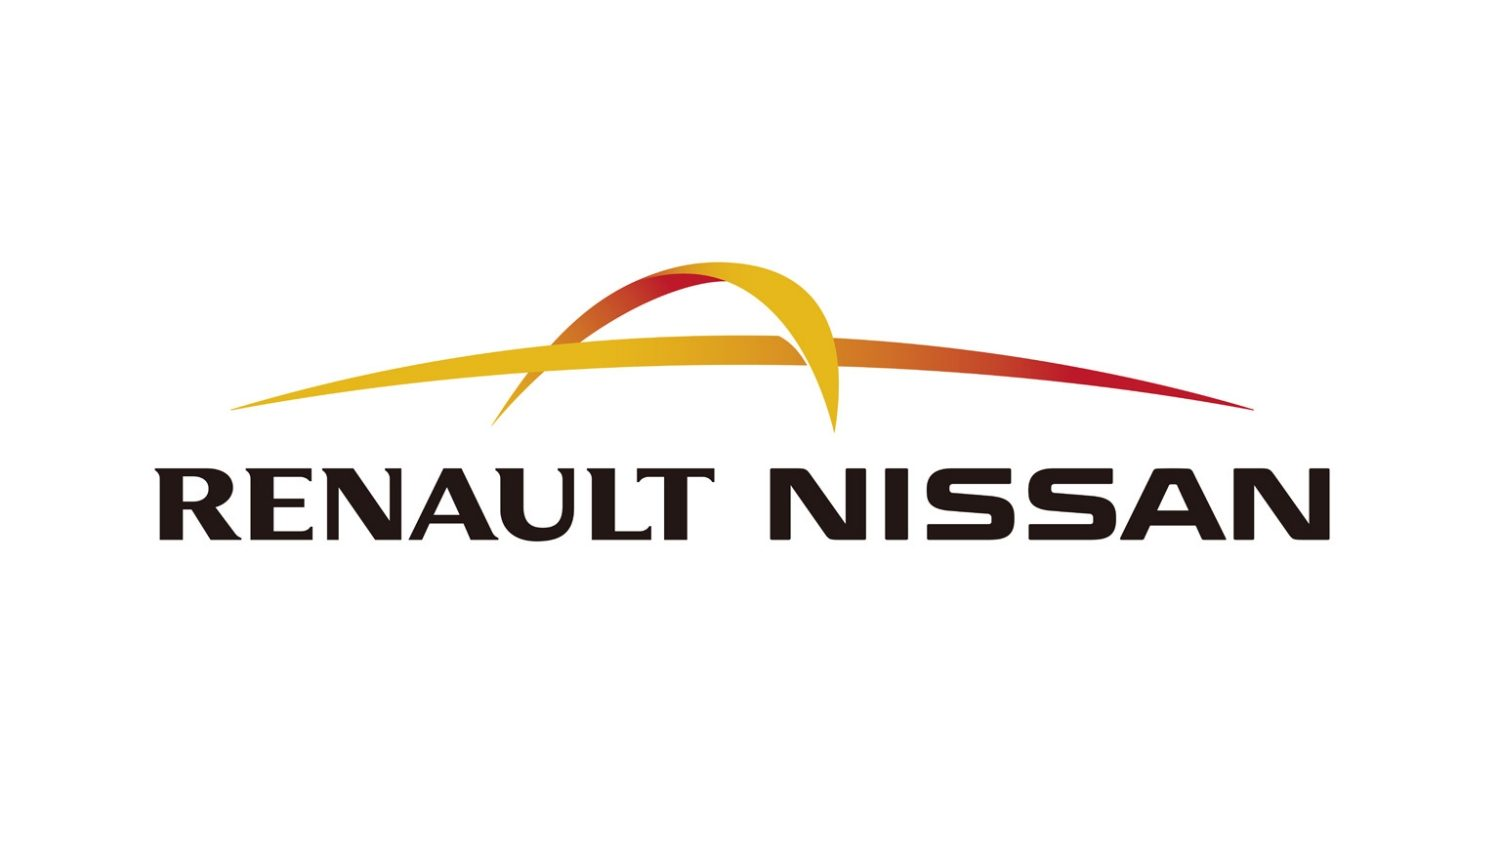 Renault-Nissan Alliance hits milestone of 350,000 electric vehicles sold, maintains position as global EV leader